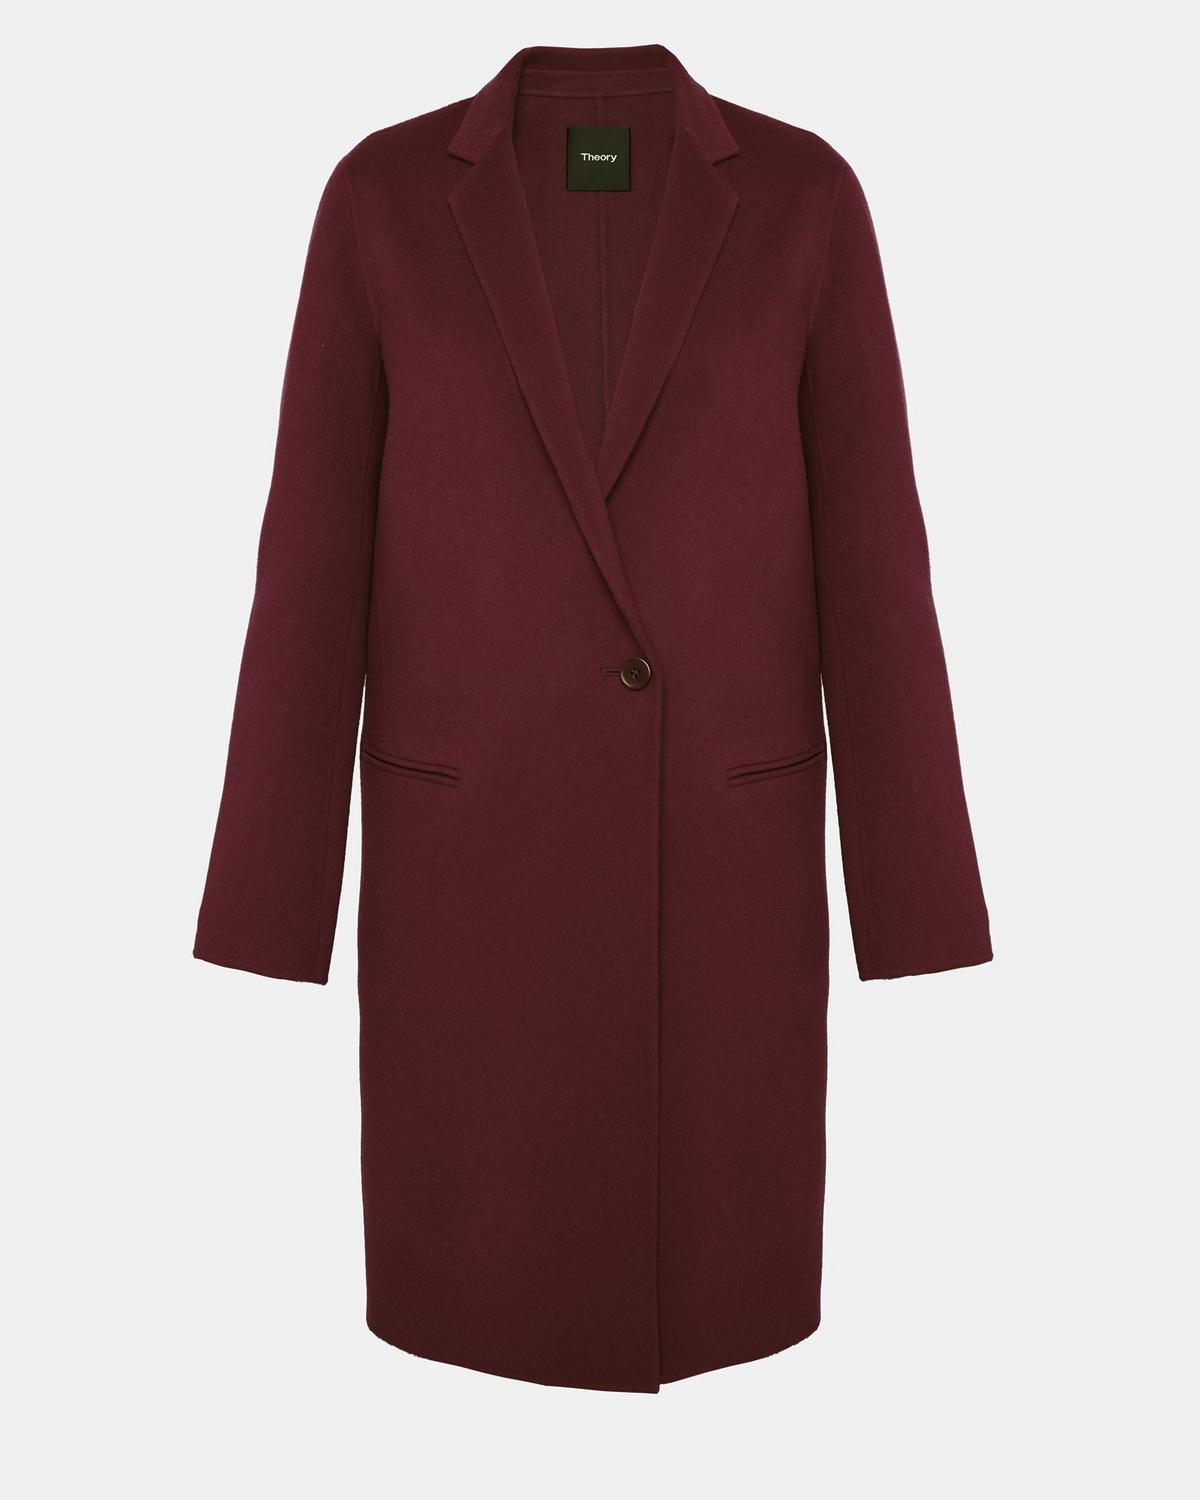 572bd3cf0d6 Double-Faced Essential Coat 1 - click to view larger image ...